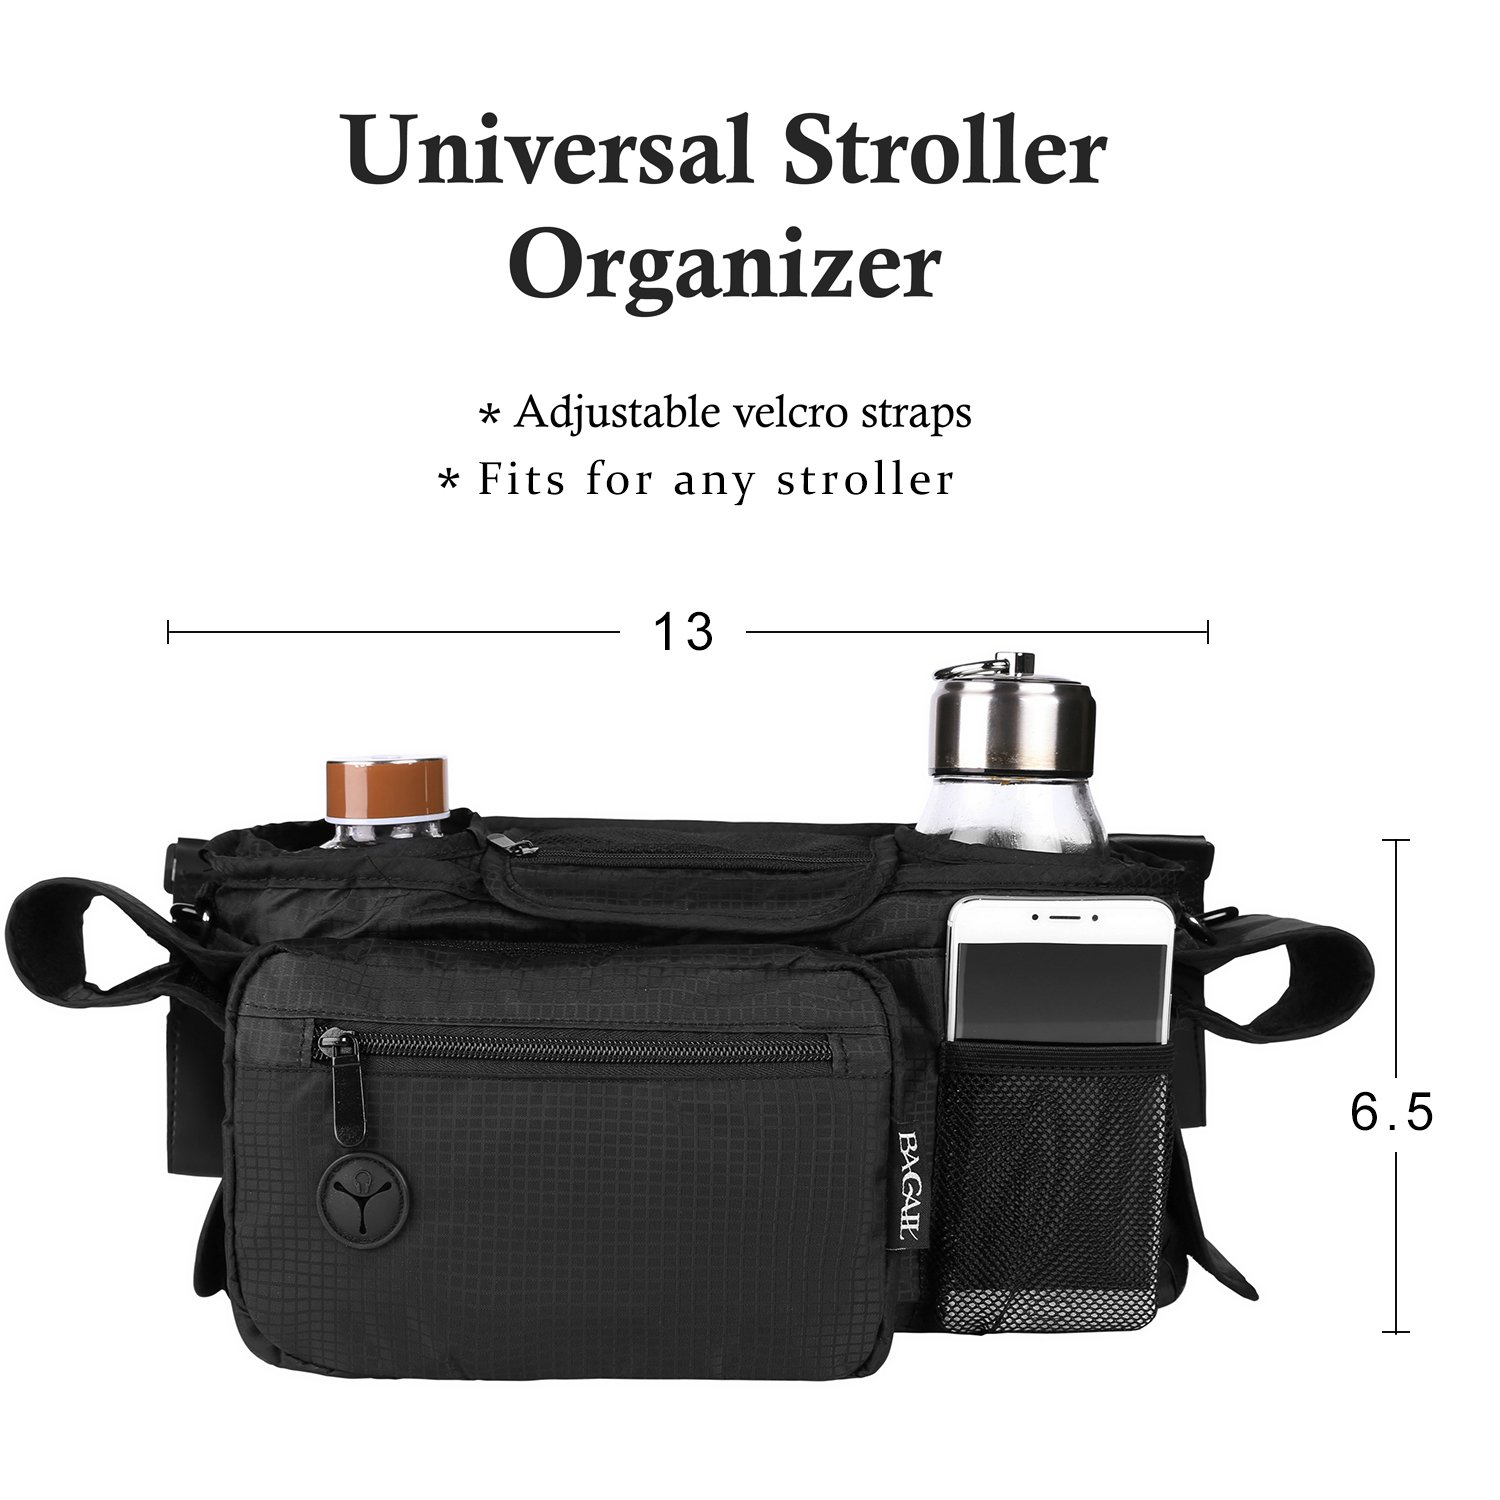 Bagail Stroller Organizer Fits All Strollers, Two Premium Deep Cup Holders, Extra-Large Storage Space for iPhones, Wallets, Diapers, Toys, & iPads, The Perfect Baby Shower Gift for Smart Moms by BAGAIL (Image #2)